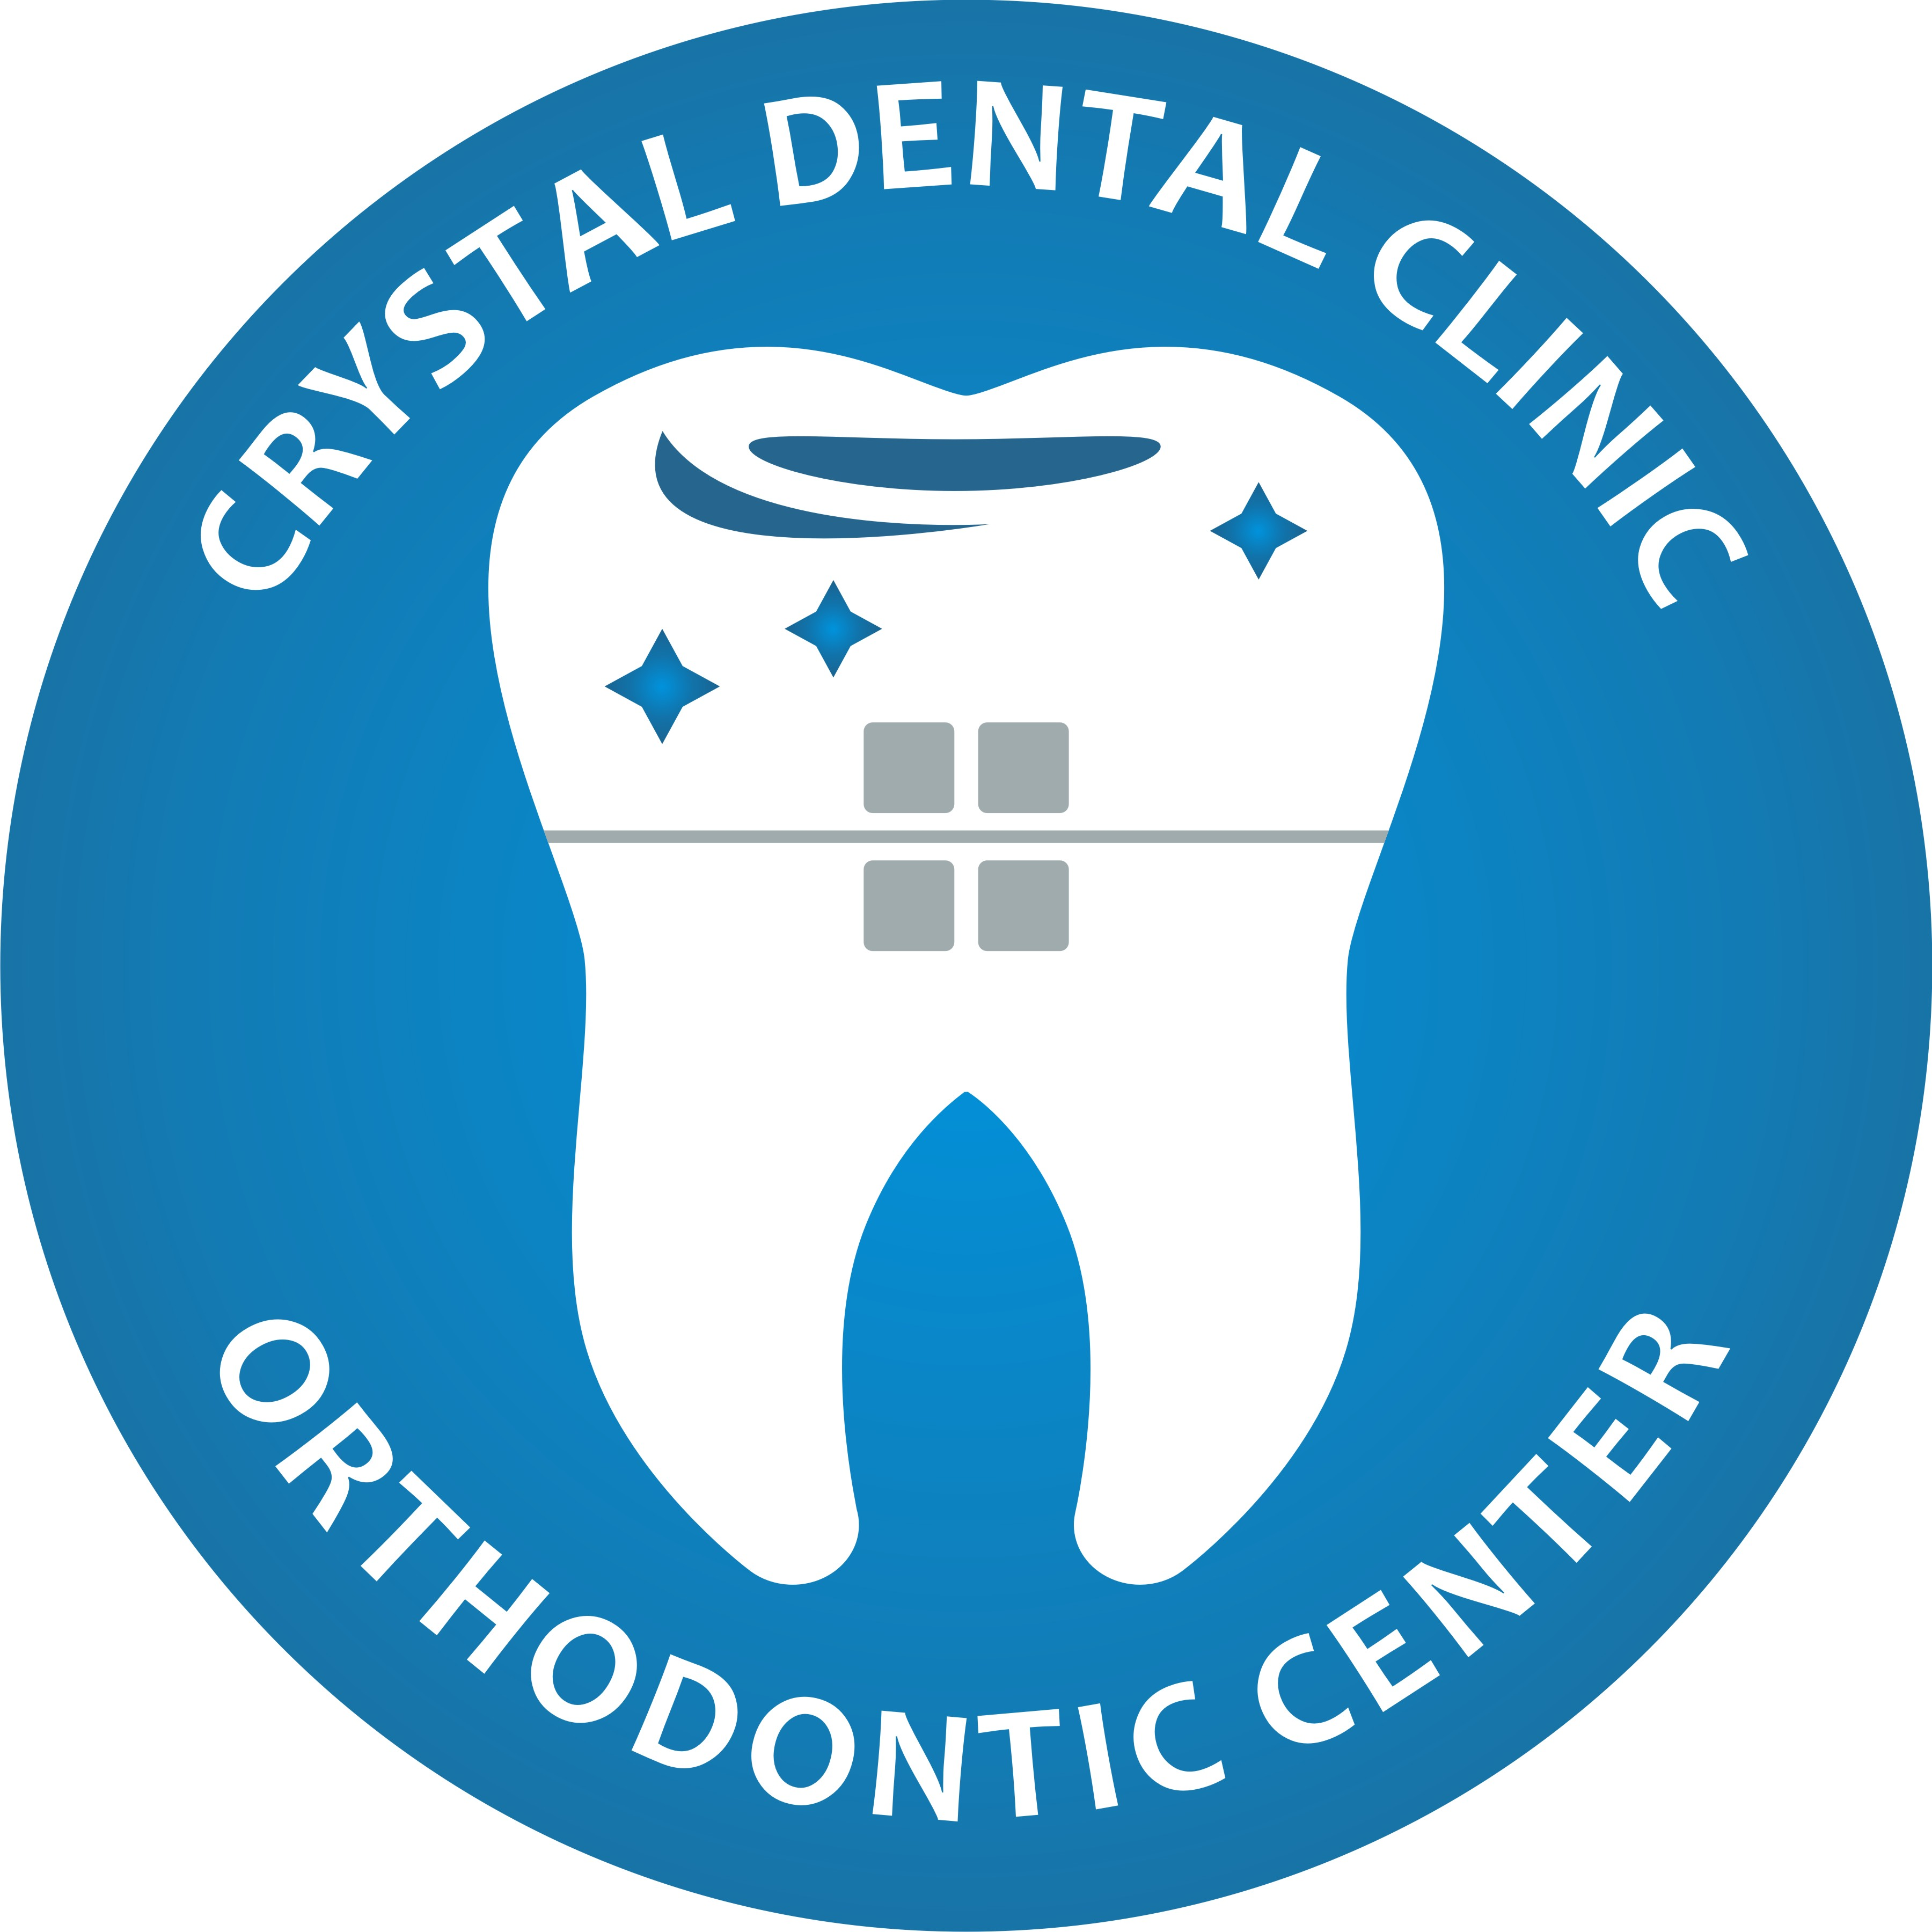 Crystal Dental Clinic and Orthodontic Center